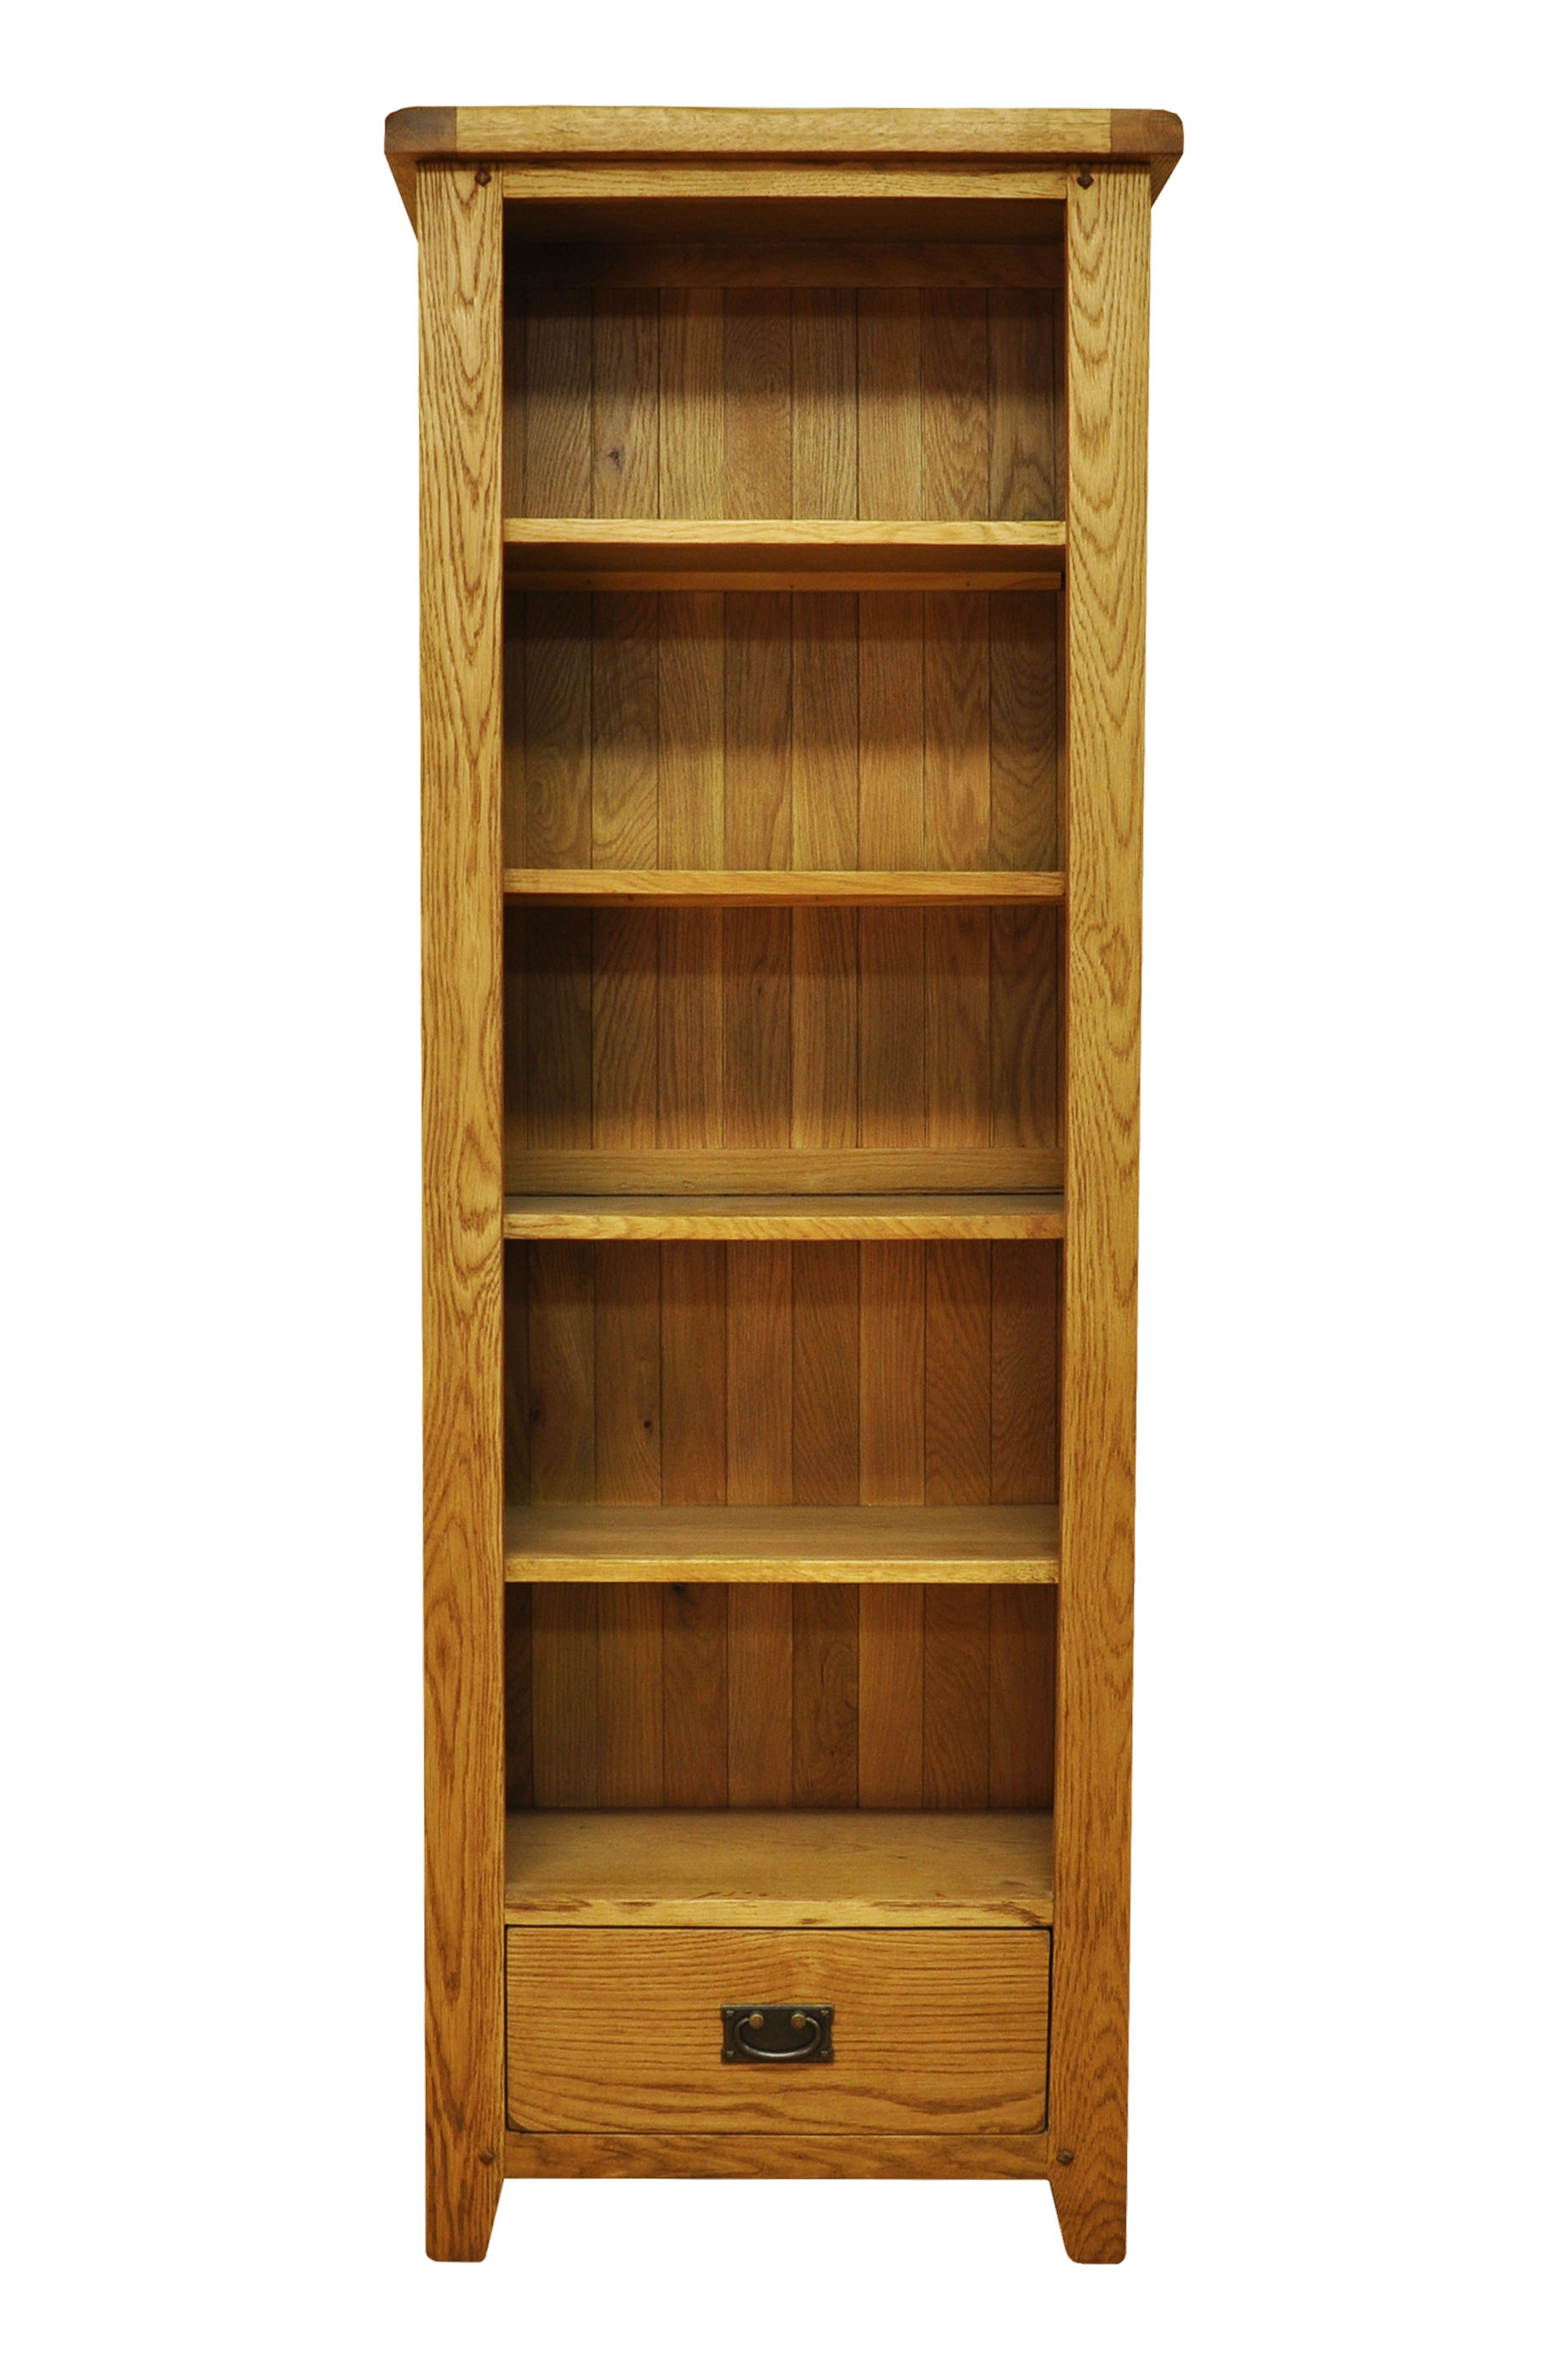 Country Oak Large Narrow Bookcase The Sofa Group With Regard To Oak Bookcase (#4 of 8)